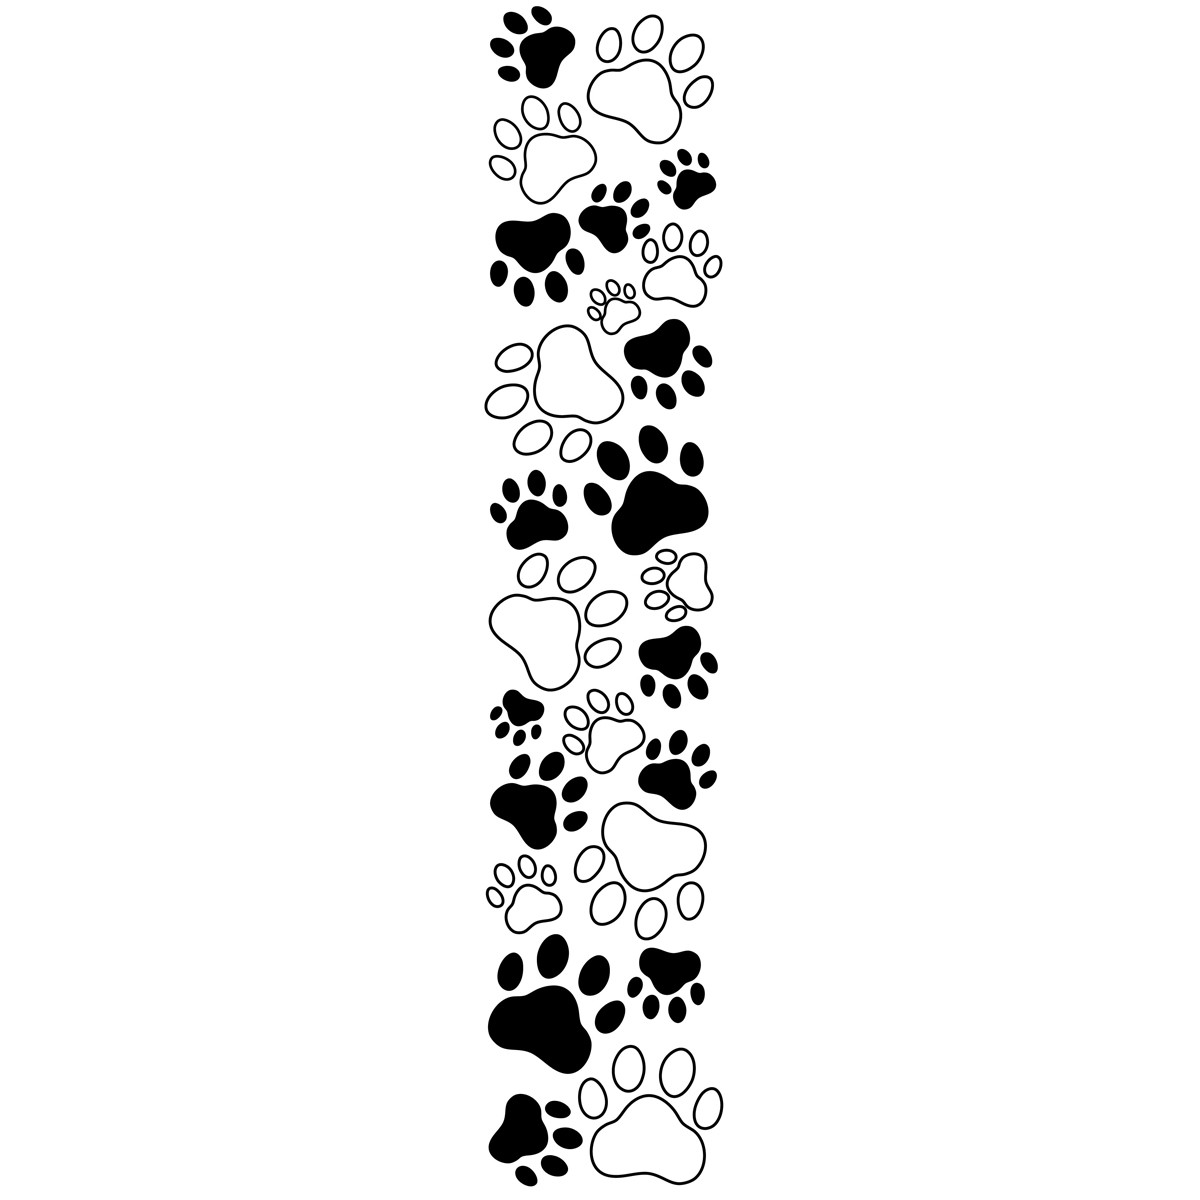 Dog paw print clip art free clipart images image